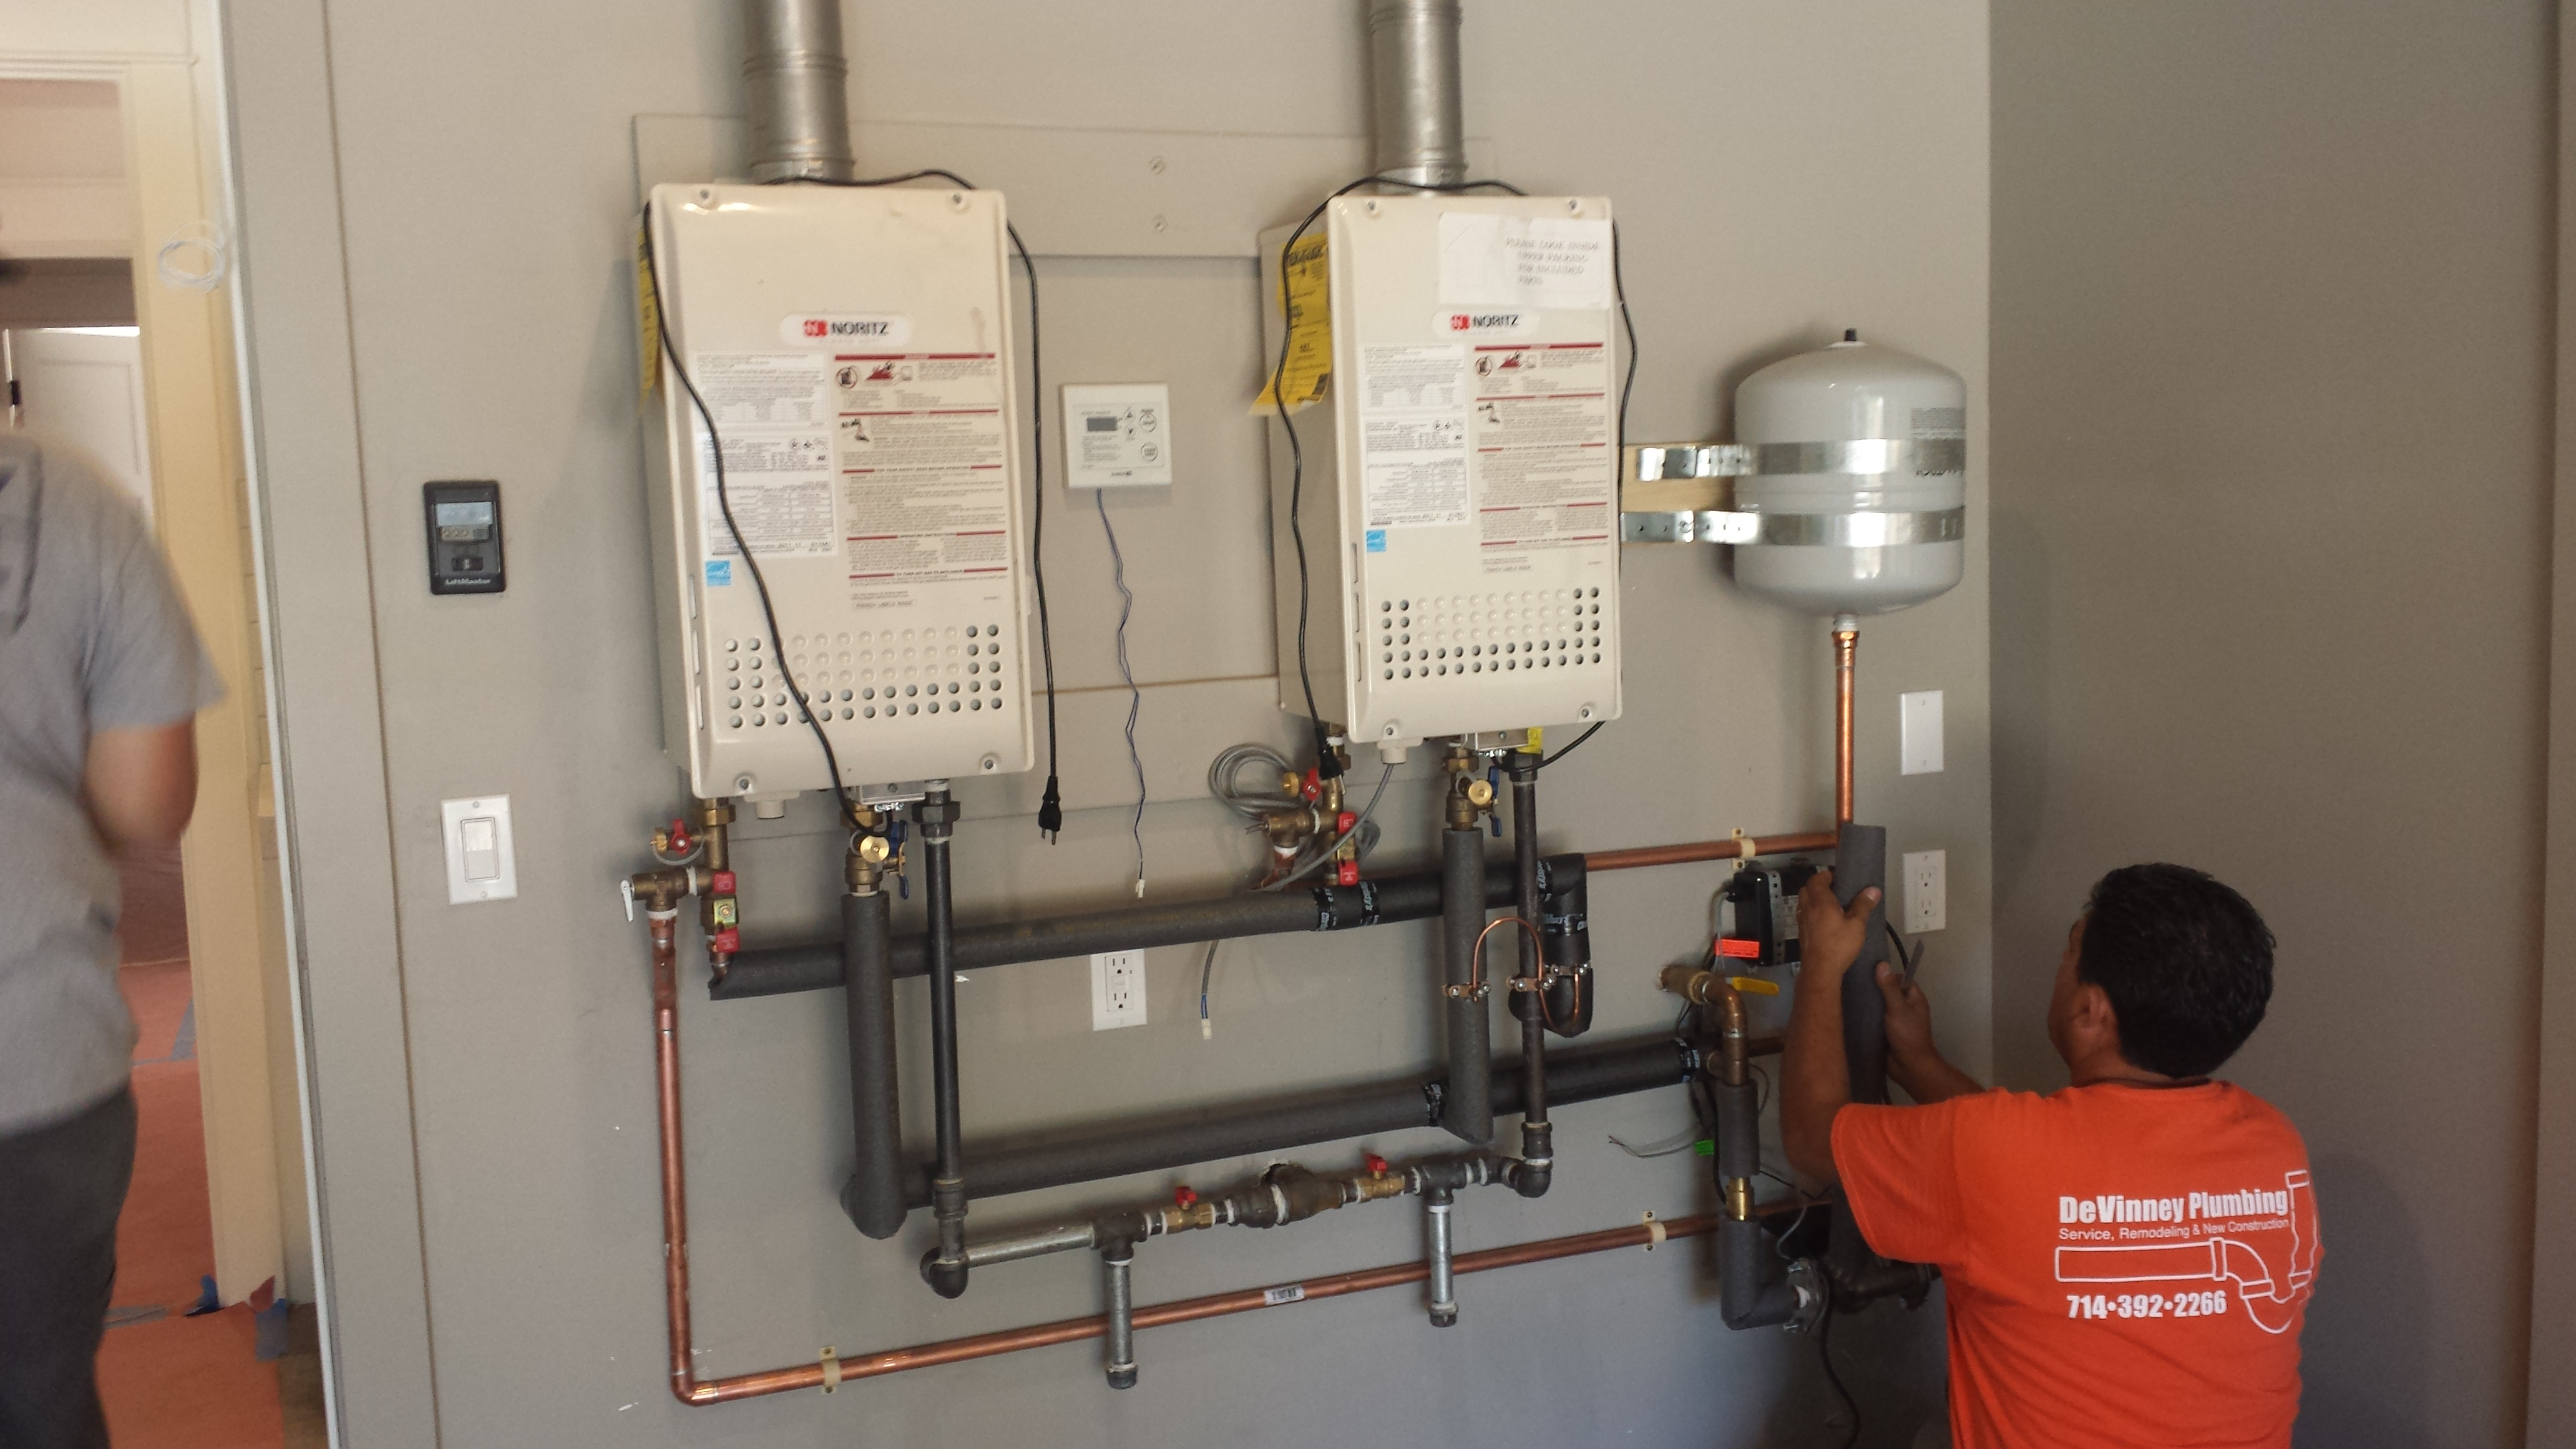 Tankless Water Heater Repair and Installation in Huntington Beach CA - DeVinney Plumbing